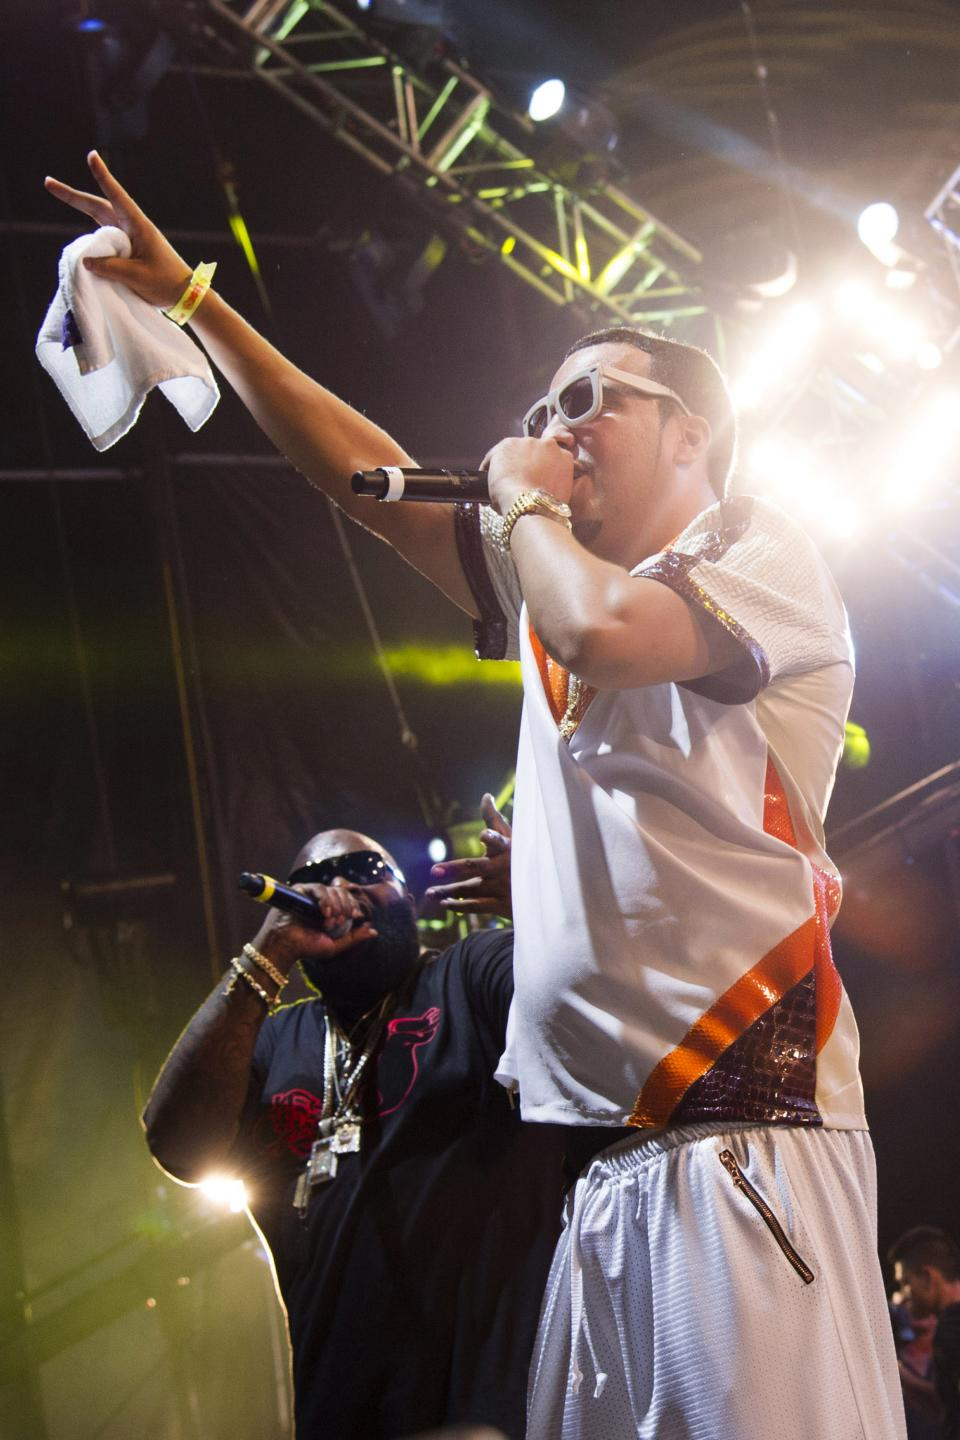 French Montana, right, and Rick Ross perform at the Hot 97 Summer Jam XX on Sunday, June 2, 2013 in East Rutherford, N.J. (Photo by Charles Sykes/Invision/AP)